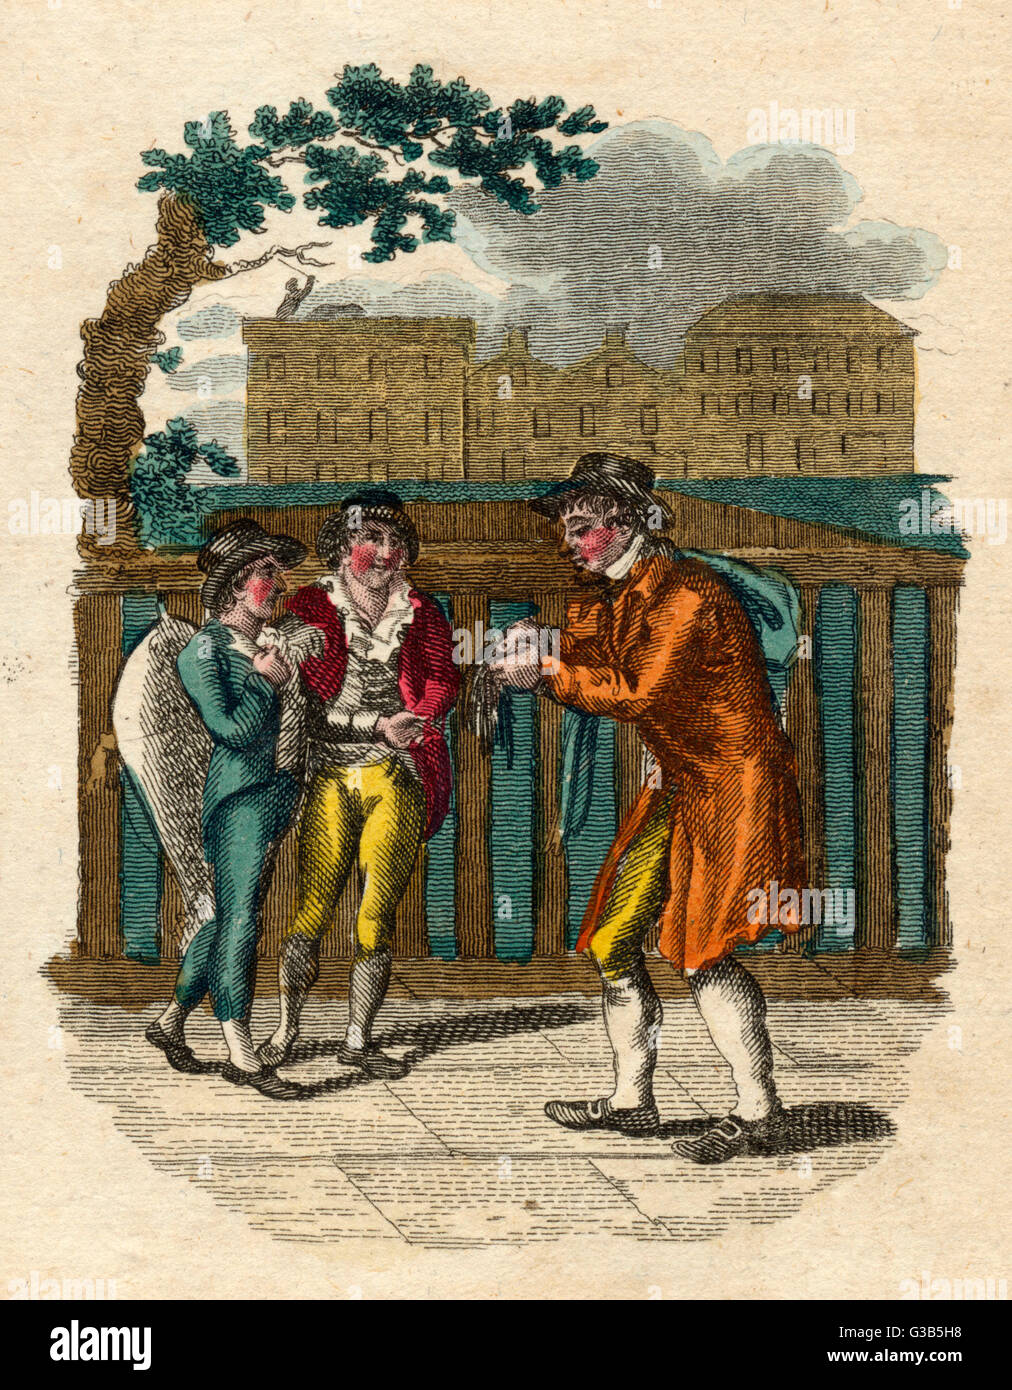 A man sells shoe-strings for  a penny a pair.        Date: 1804 - Stock Image